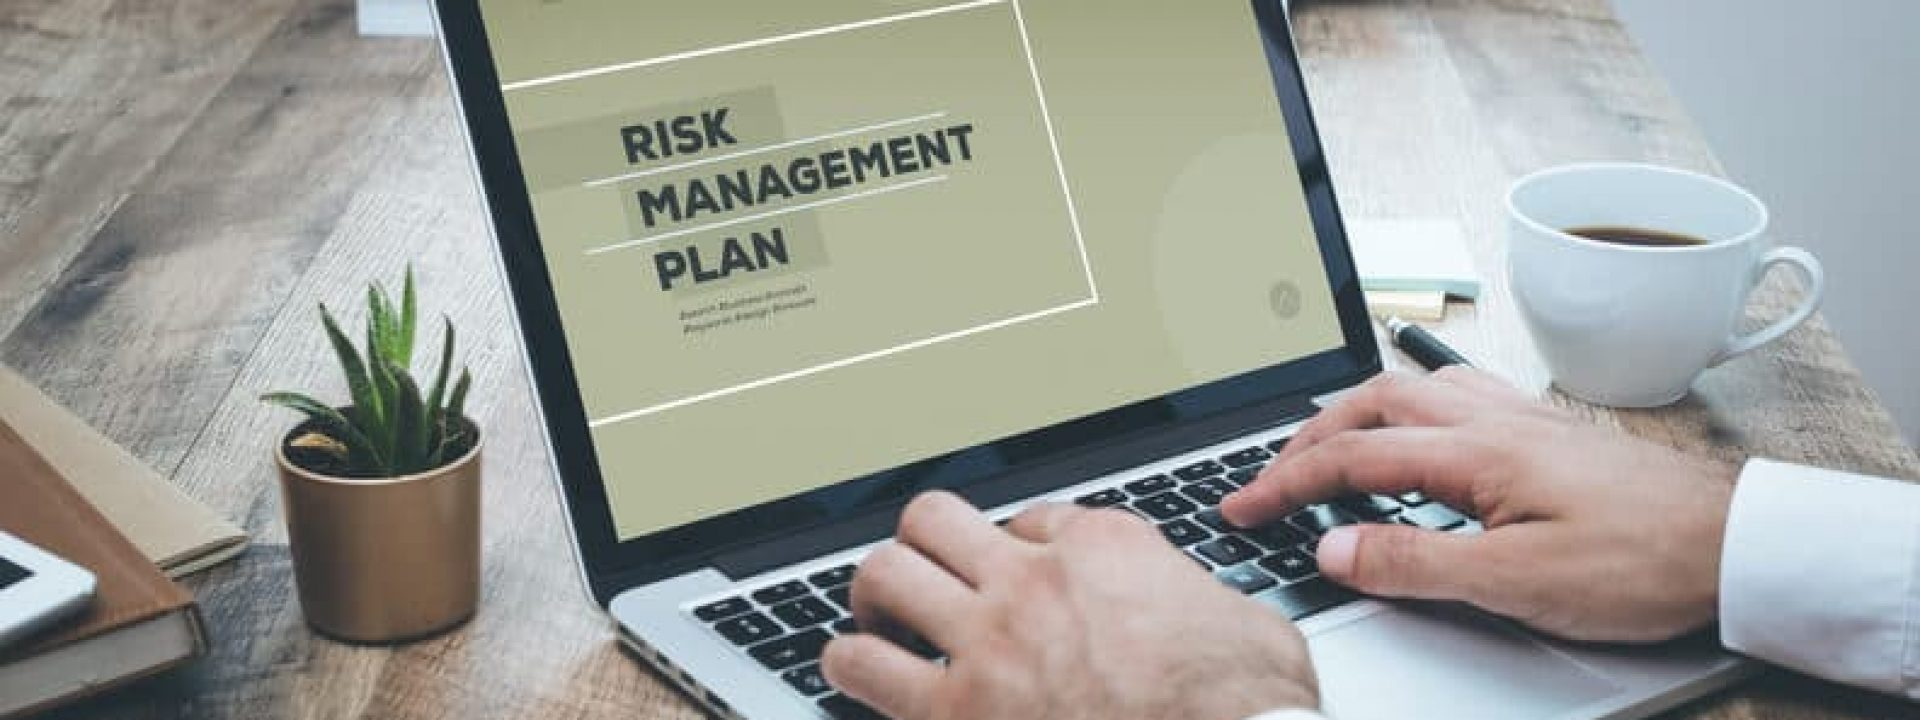 RISK MANAGEMENT PLAN CONCEPT